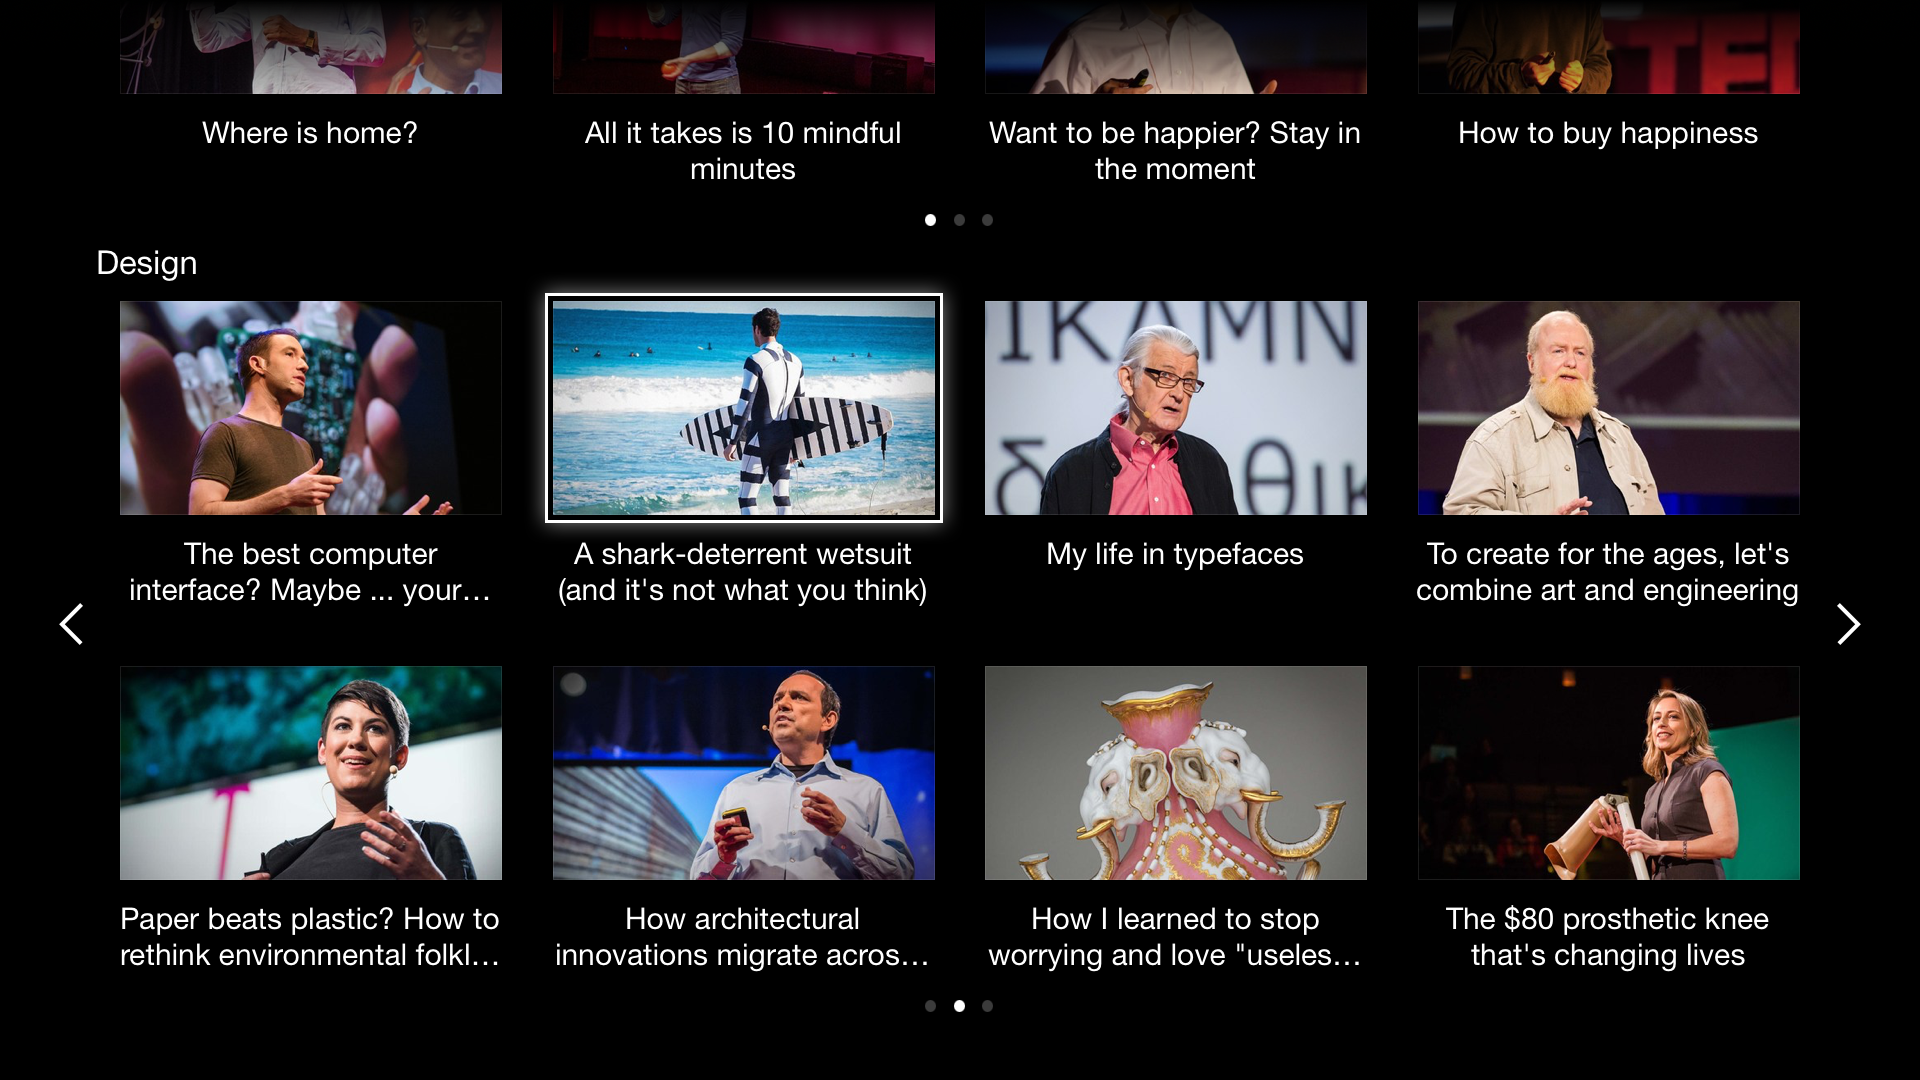 There are lots of ways to discover new talks on our Apple TV app—you can browse the most recent talks, trending talks, or talks by topics.